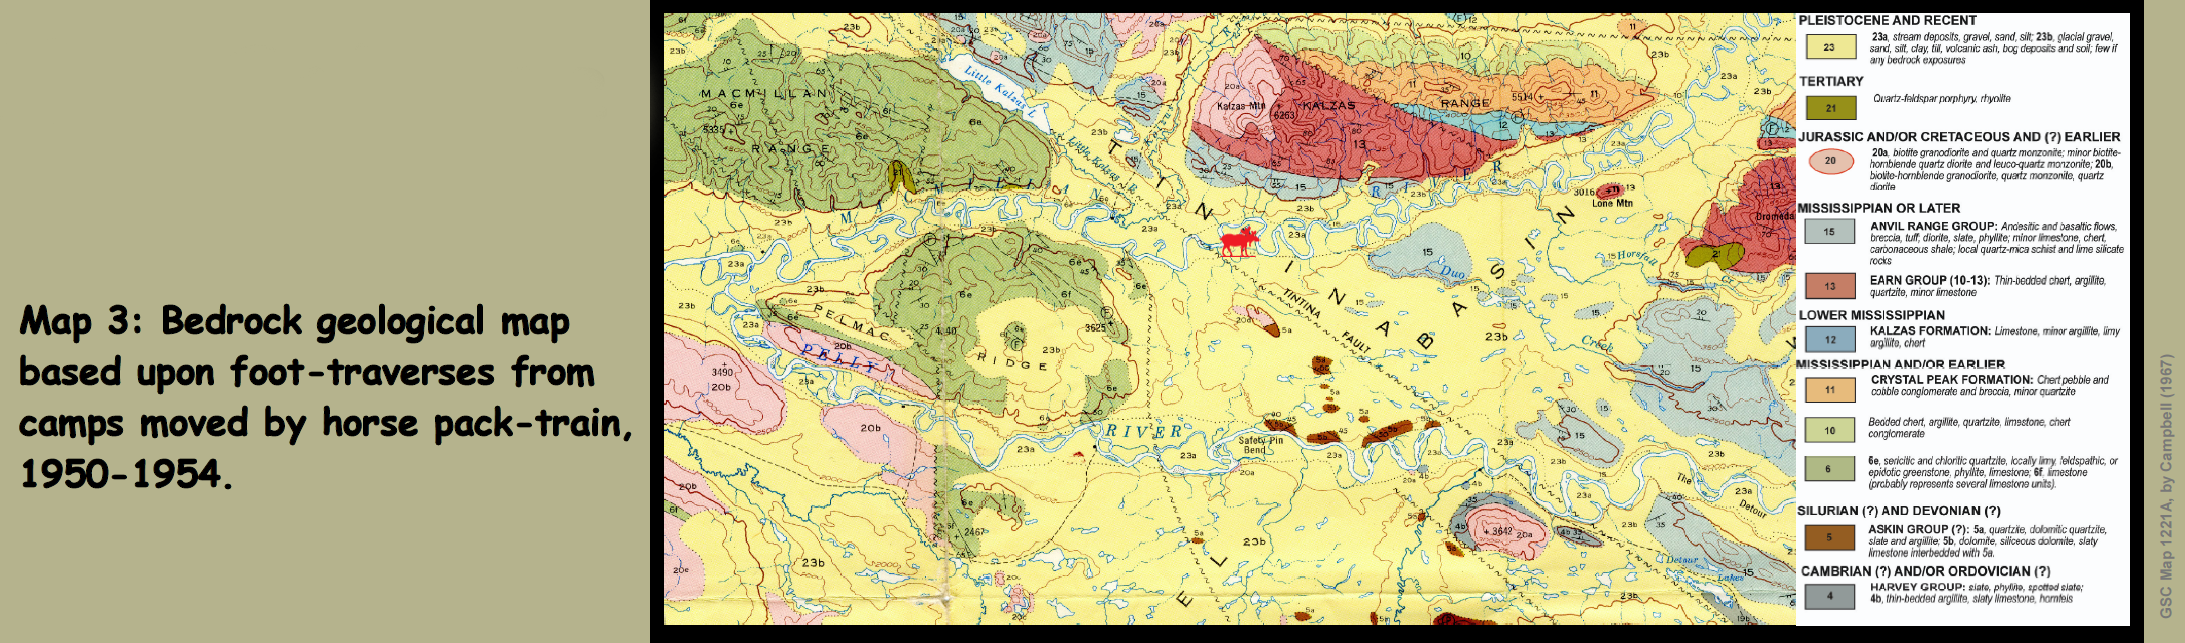 Map 3: Bedrock geological map based upon foot-traverses from camps moved by horse pack-train, 1950-1954